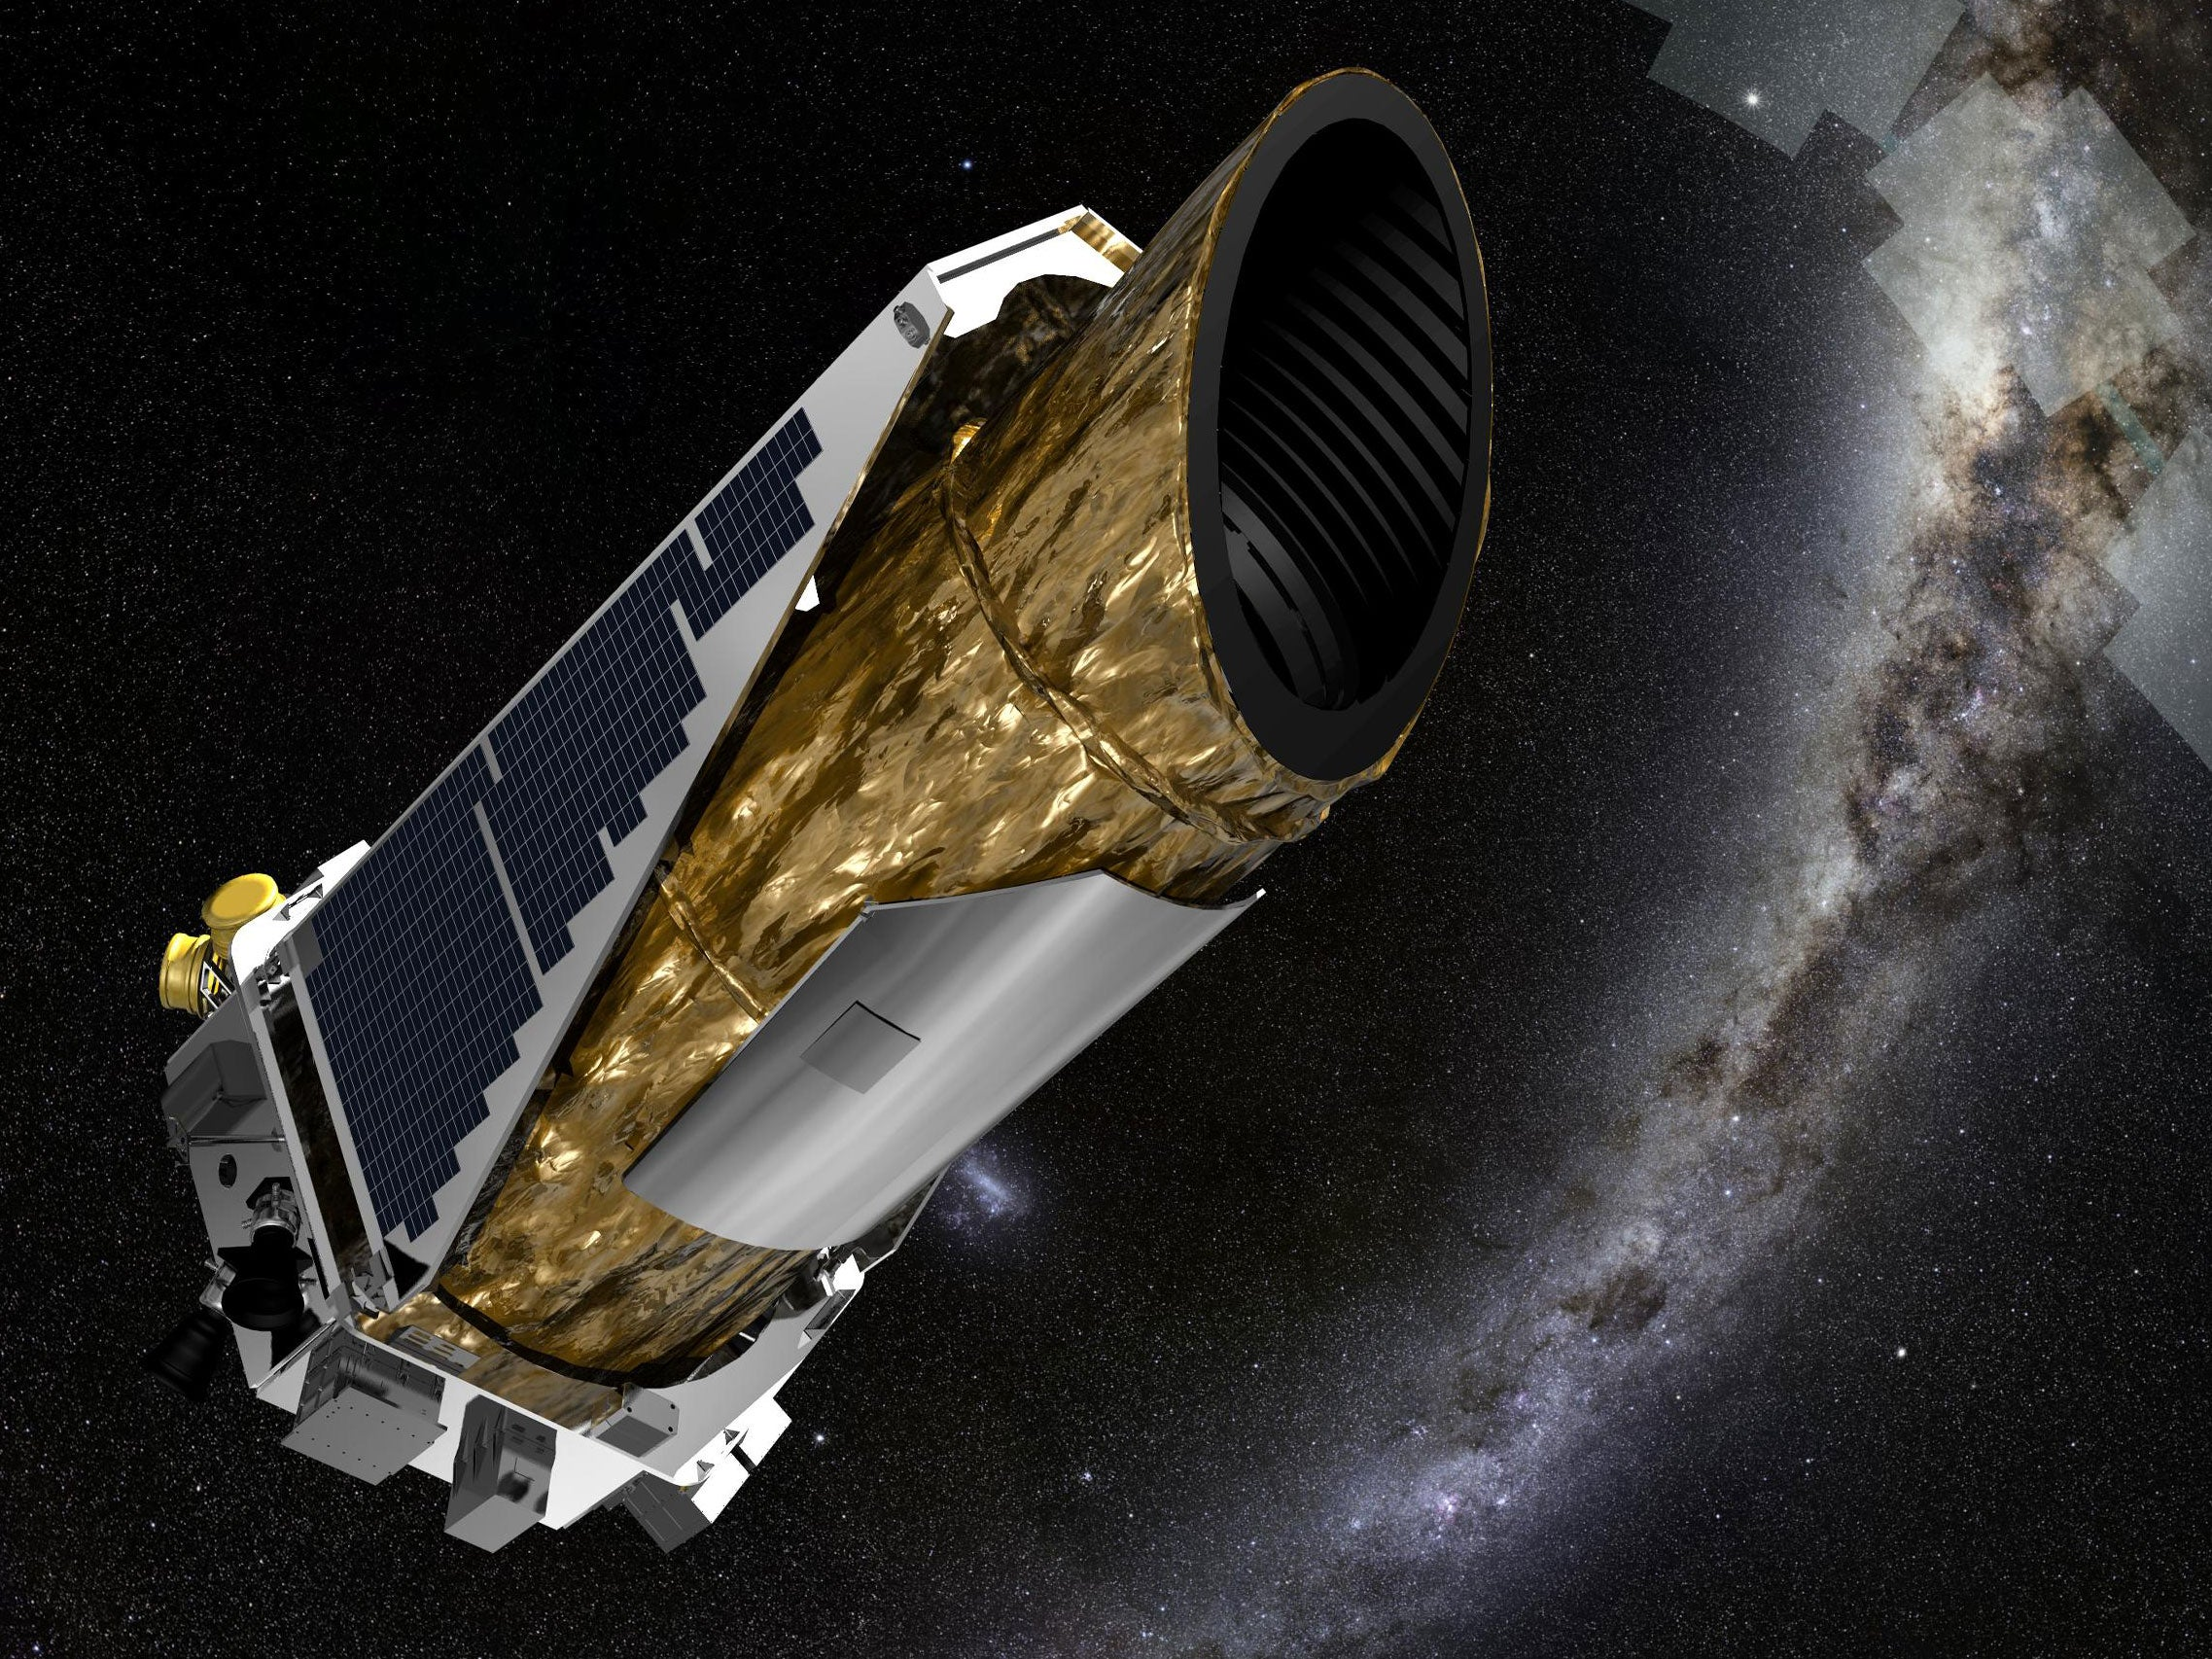 Kepler telescope transferred to safe mode